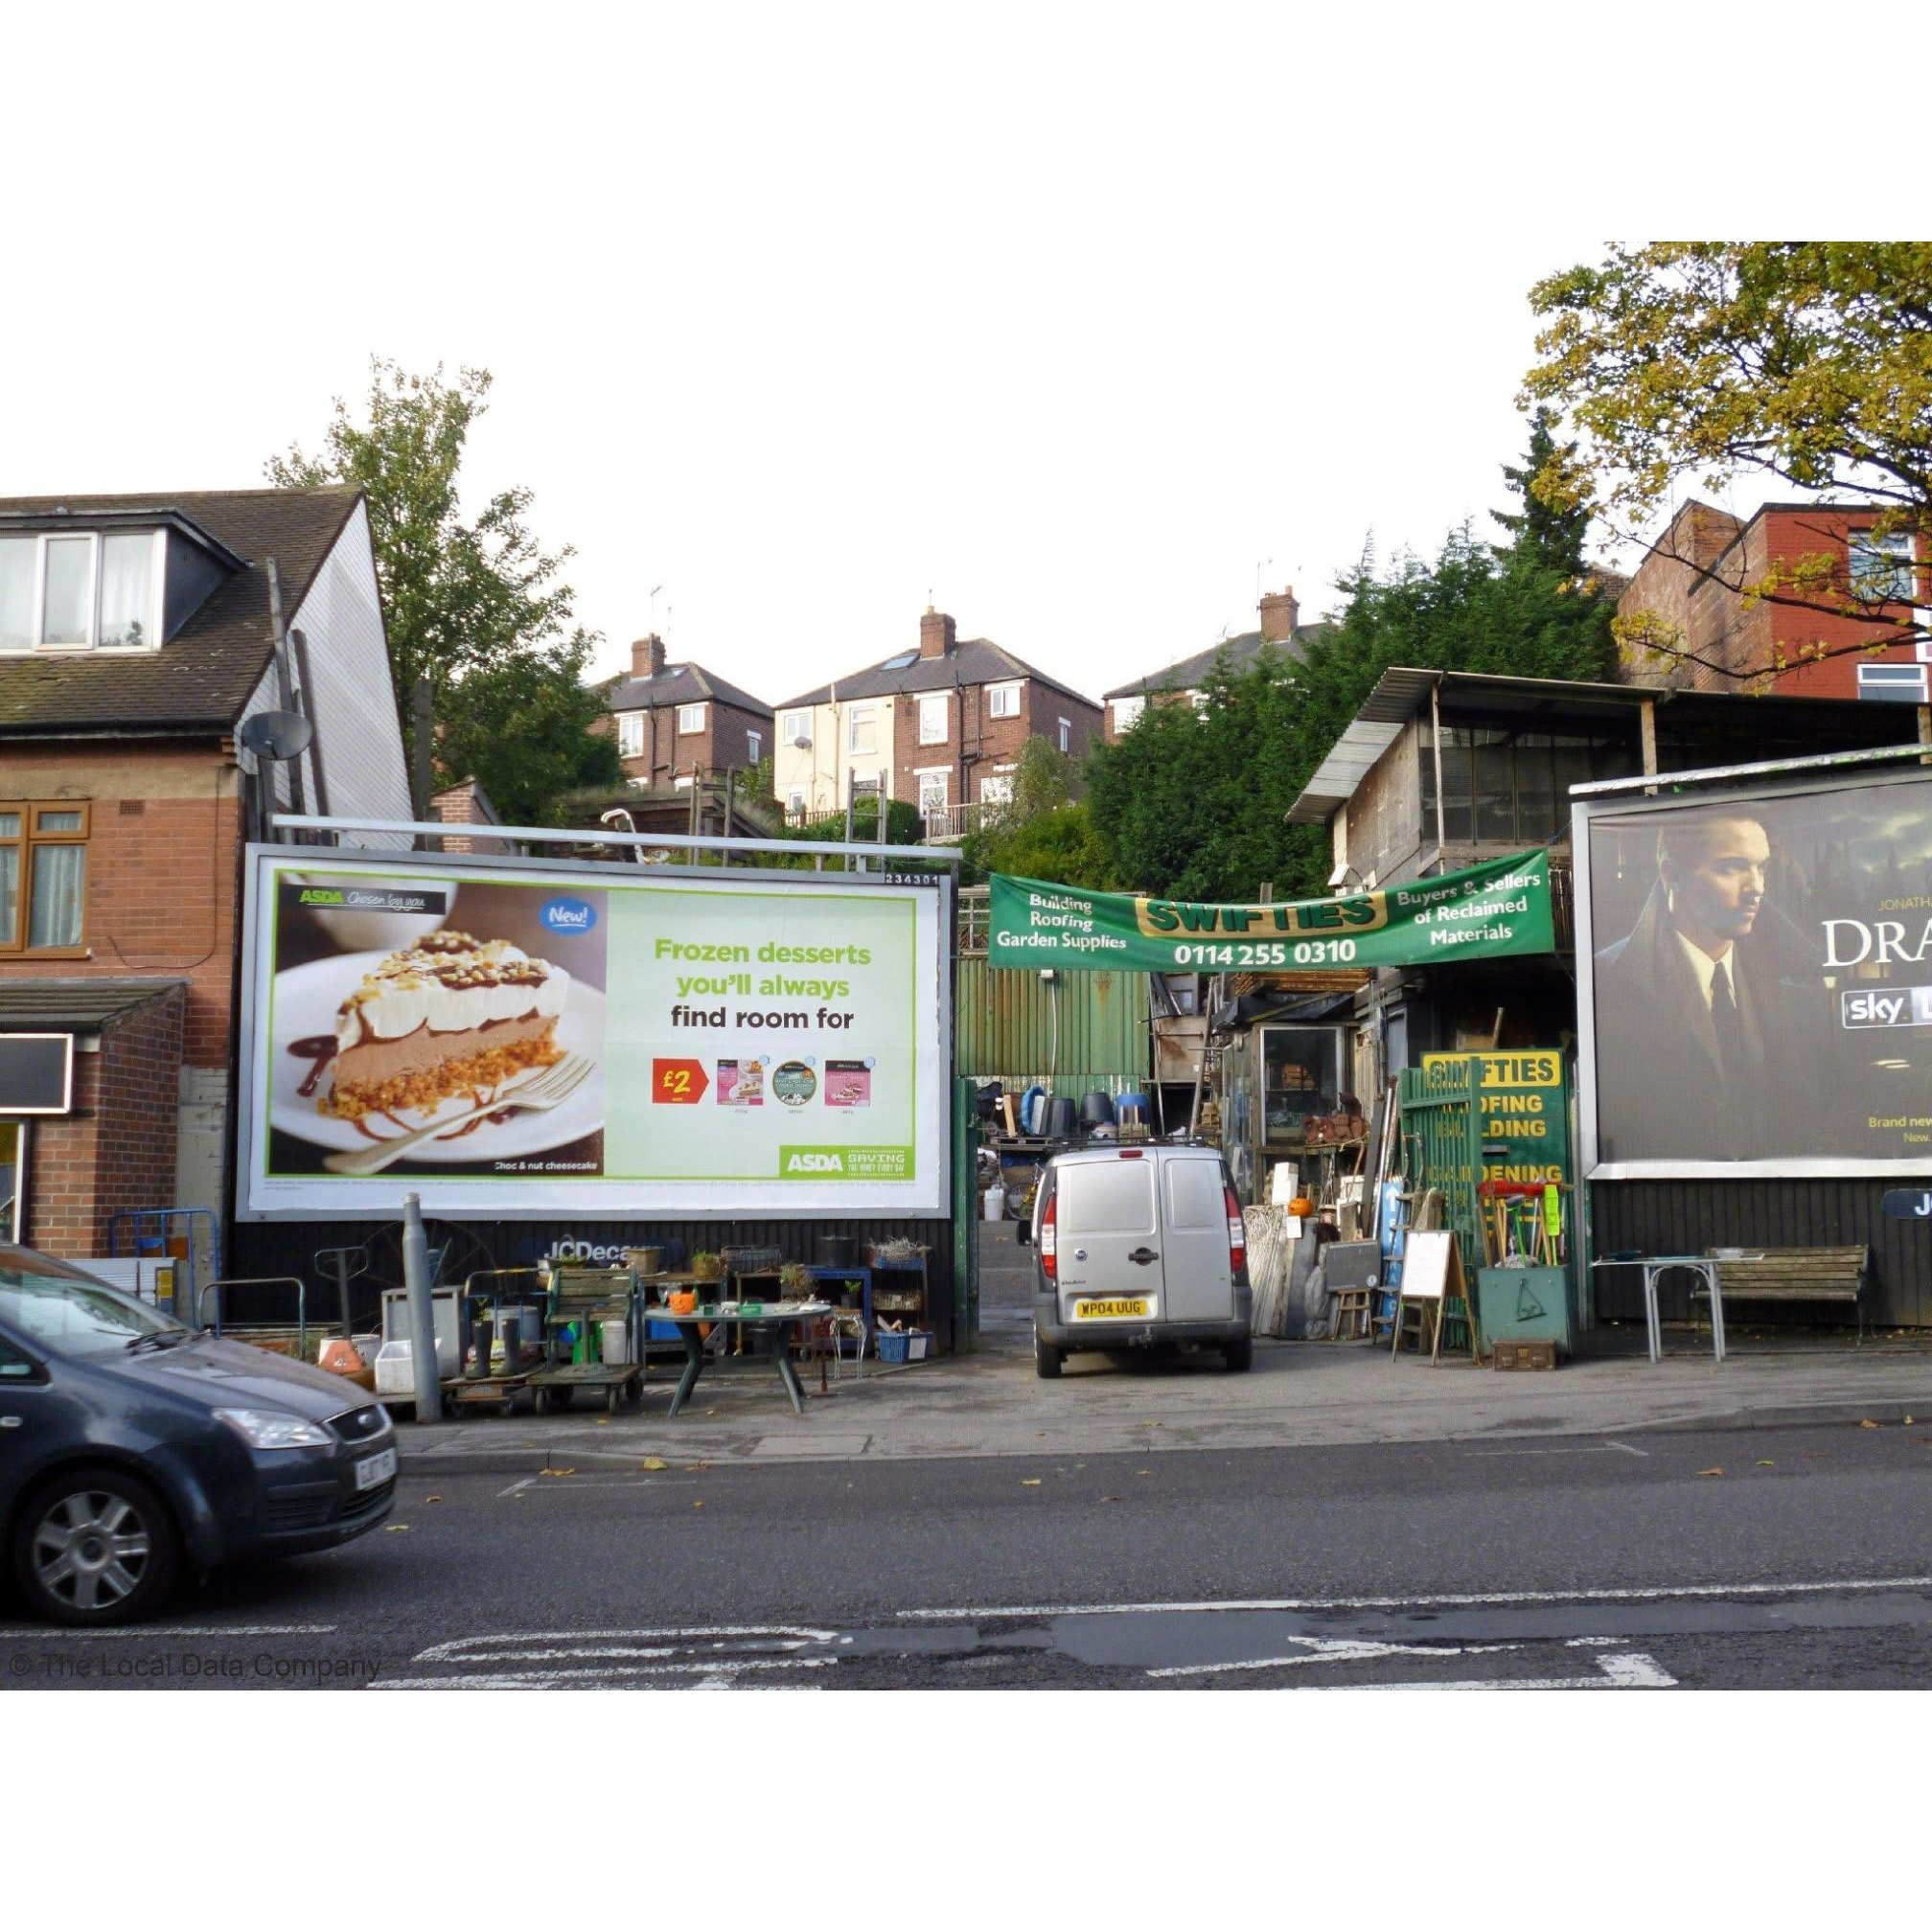 Swifties Roofing Materials In Sheffield S7 1fq 192 Com